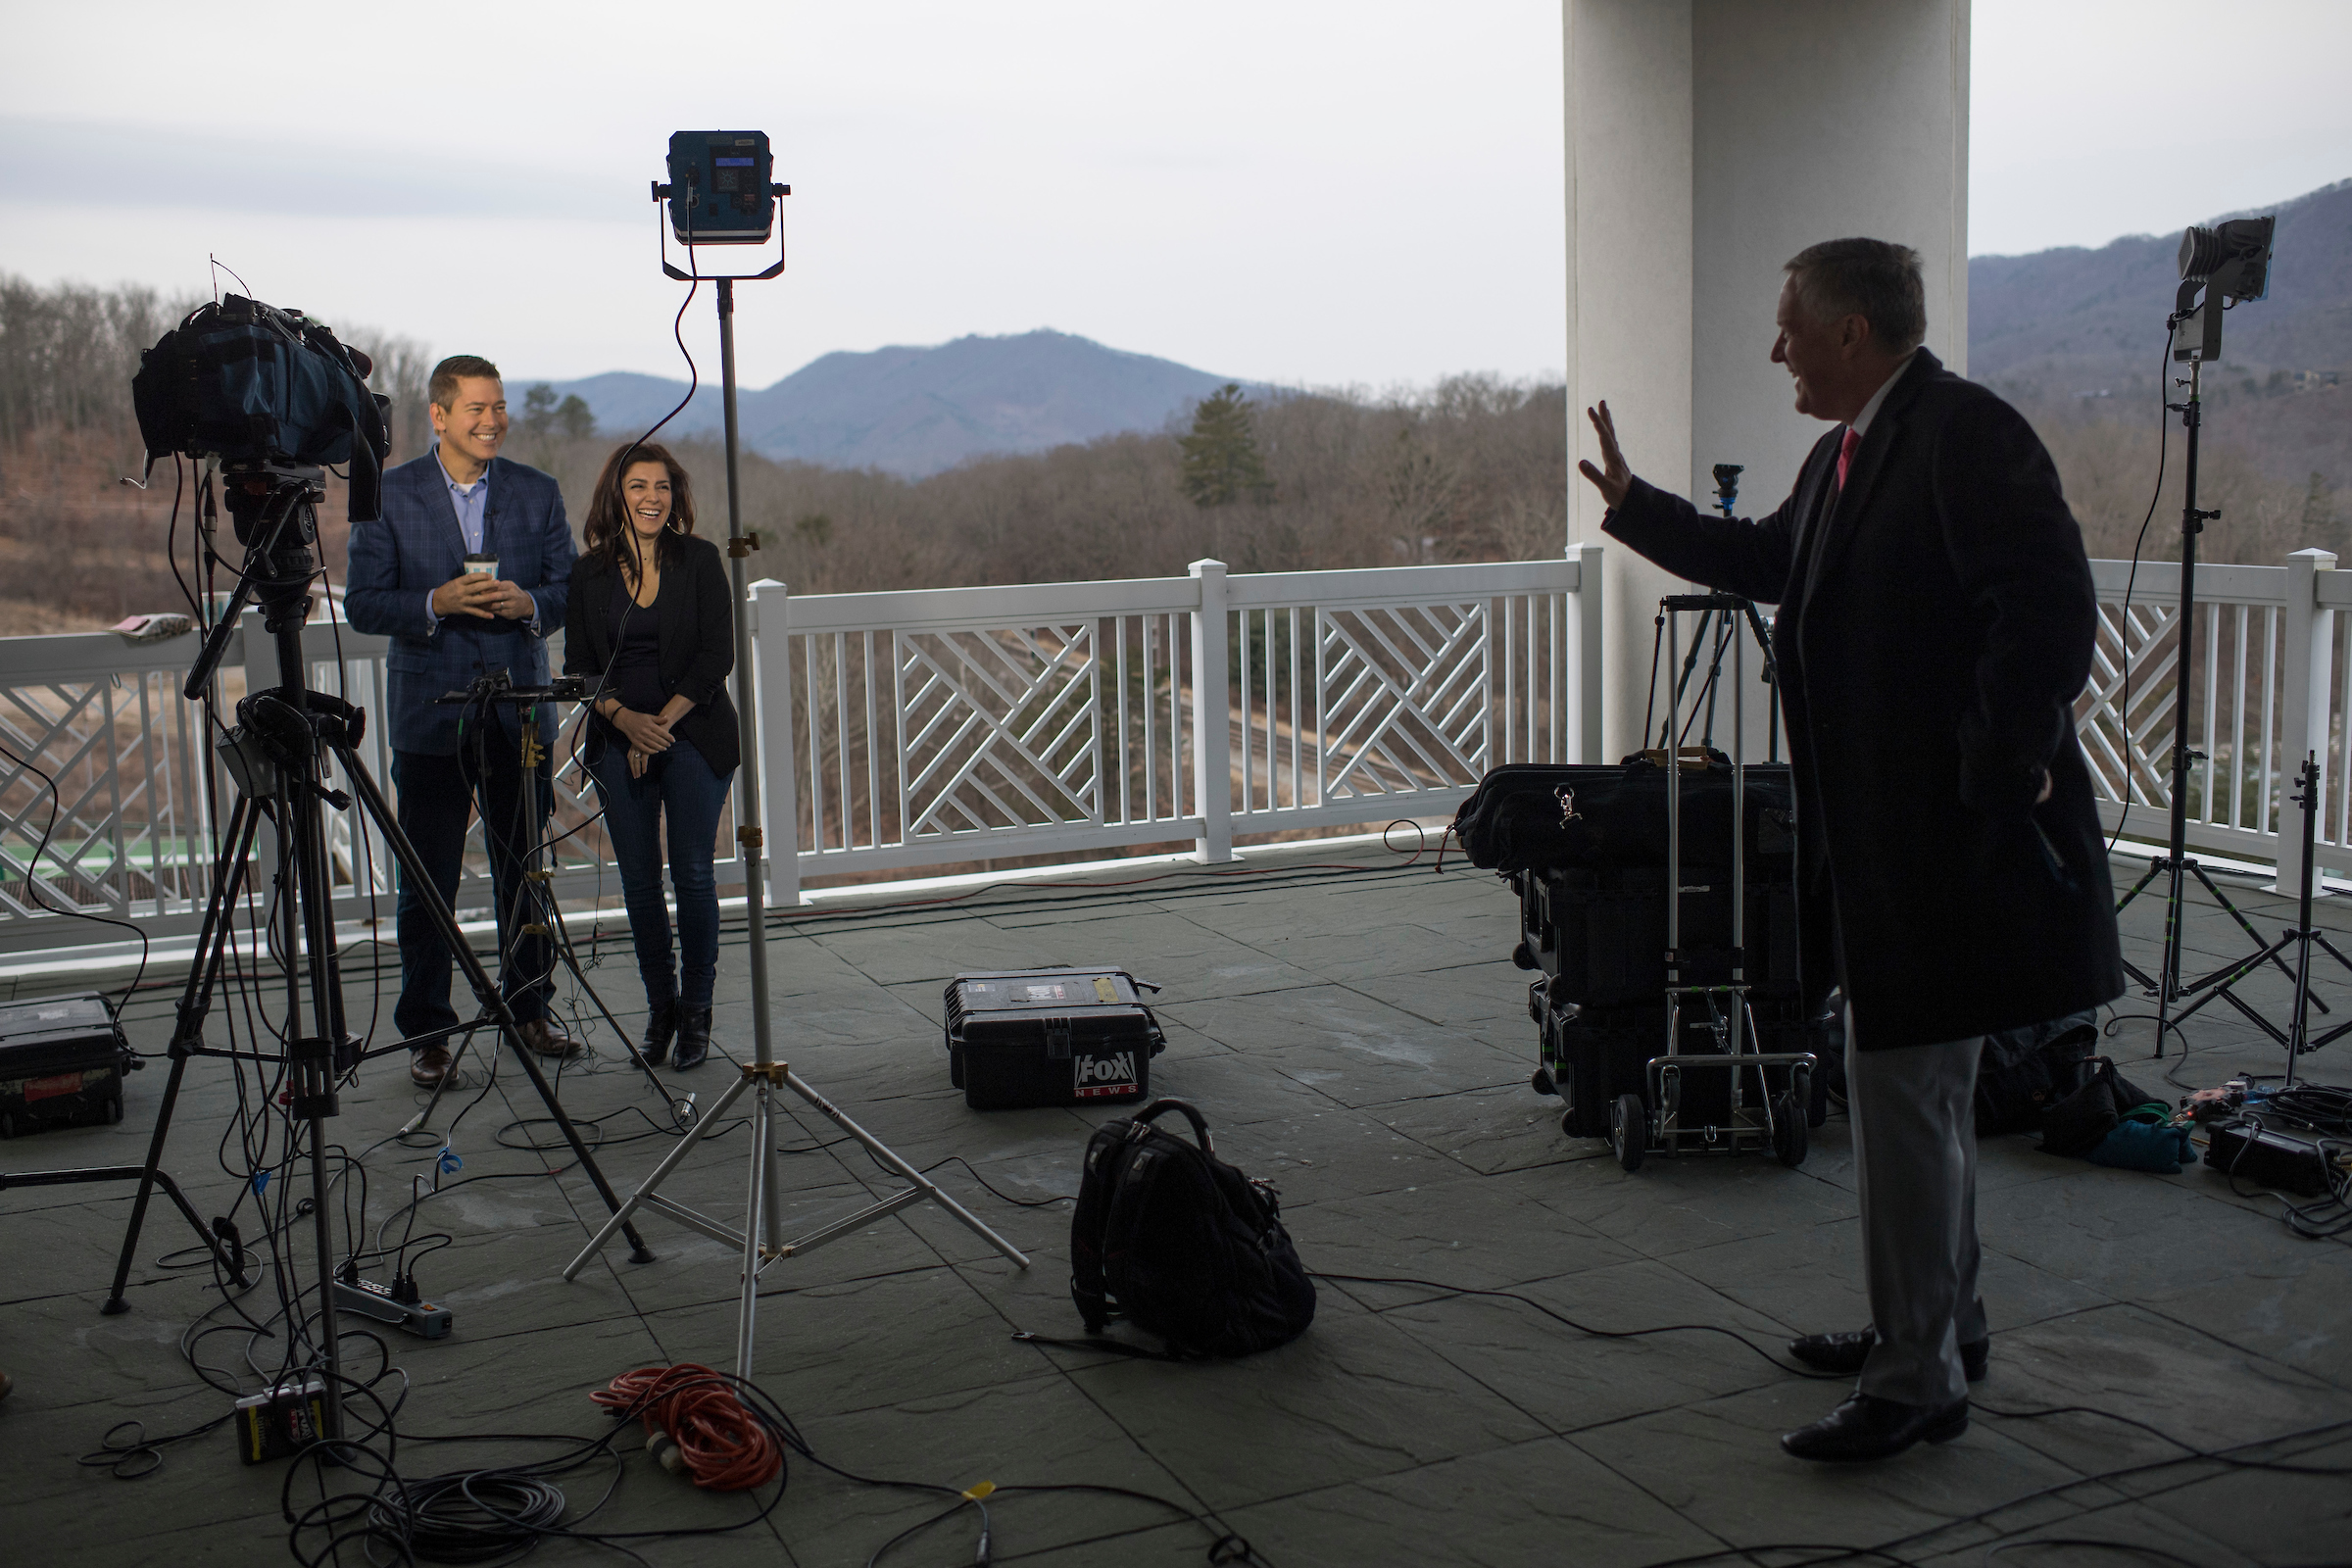 UNITED STATES - FEBRUARY 01: Rep. Mark Meadows, R-N.C., right, talks with Rep. Sean Duffy, R-Wis., and his wife Rachel Campos-Duffy at the media center during House and Senate Republican retreat at The Greenbrier resort in White Sulphur Springs, W.Va., on February 1, 2018. (Photo By Tom Williams/CQ Roll Call)